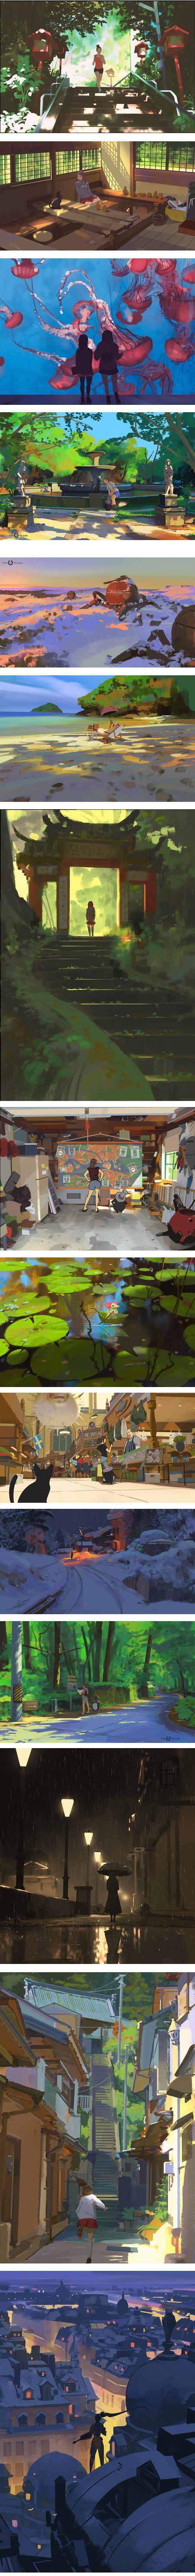 Atey Ghailan, concept art and illustration, Path of Miranda